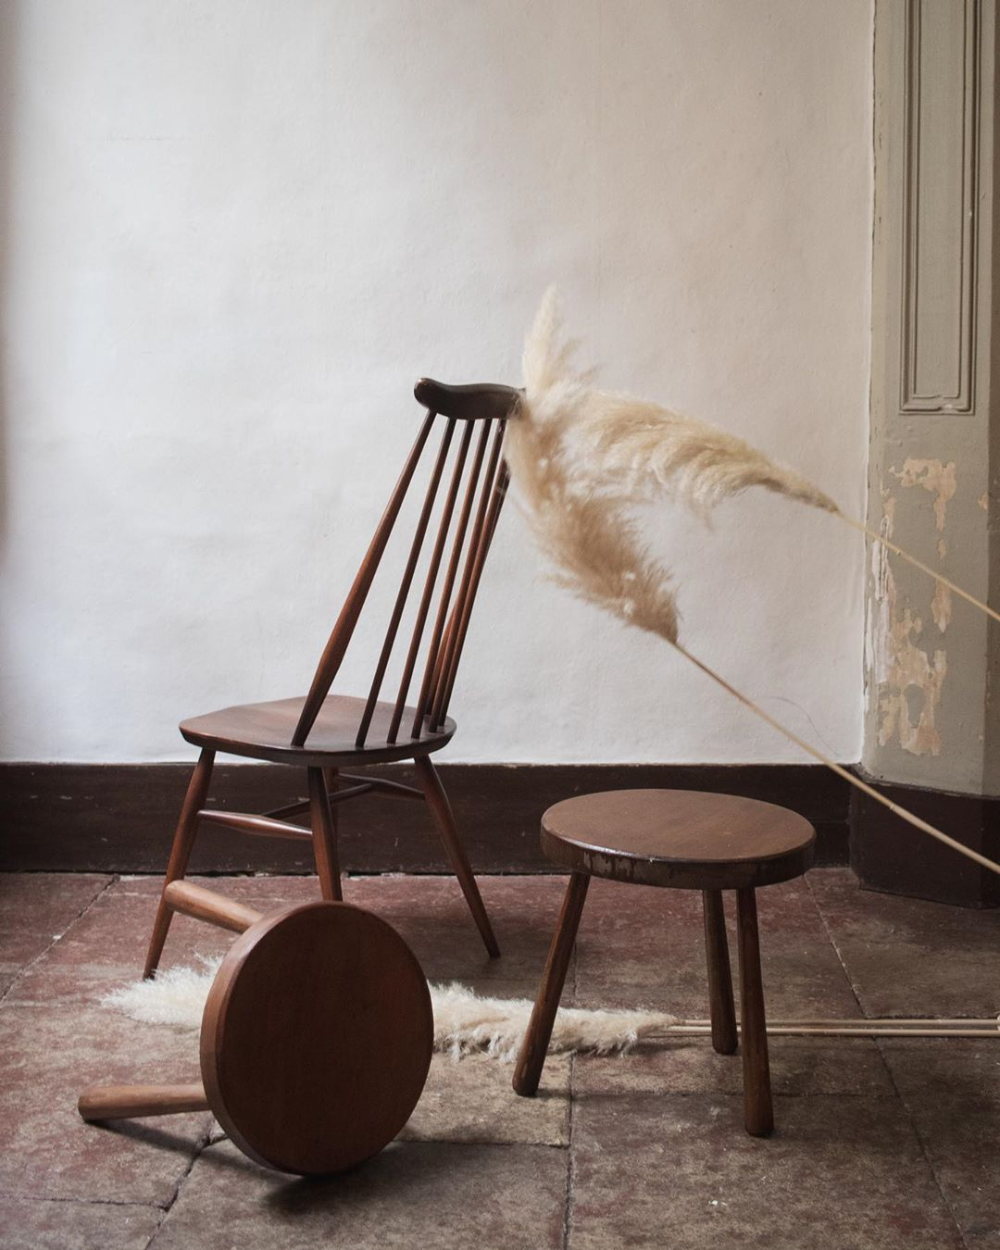 Studio Doux Aout Douxaout Instagram Photos And Videos Decor Furniture Dining Chairs